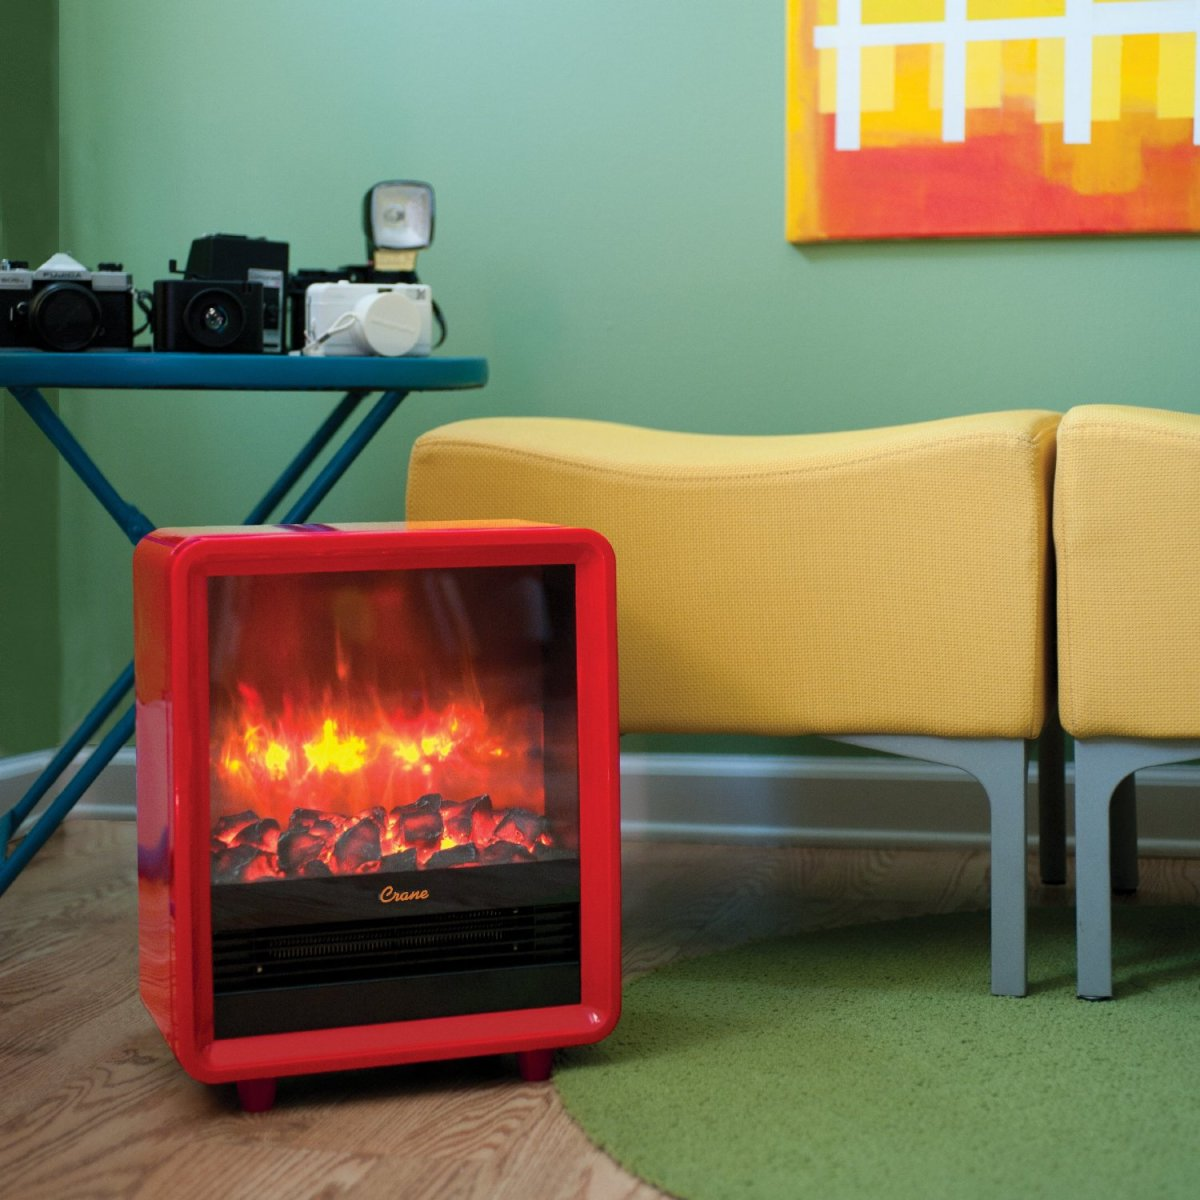 The Fireplace Space Heater for Ironic Hipster Living Rooms